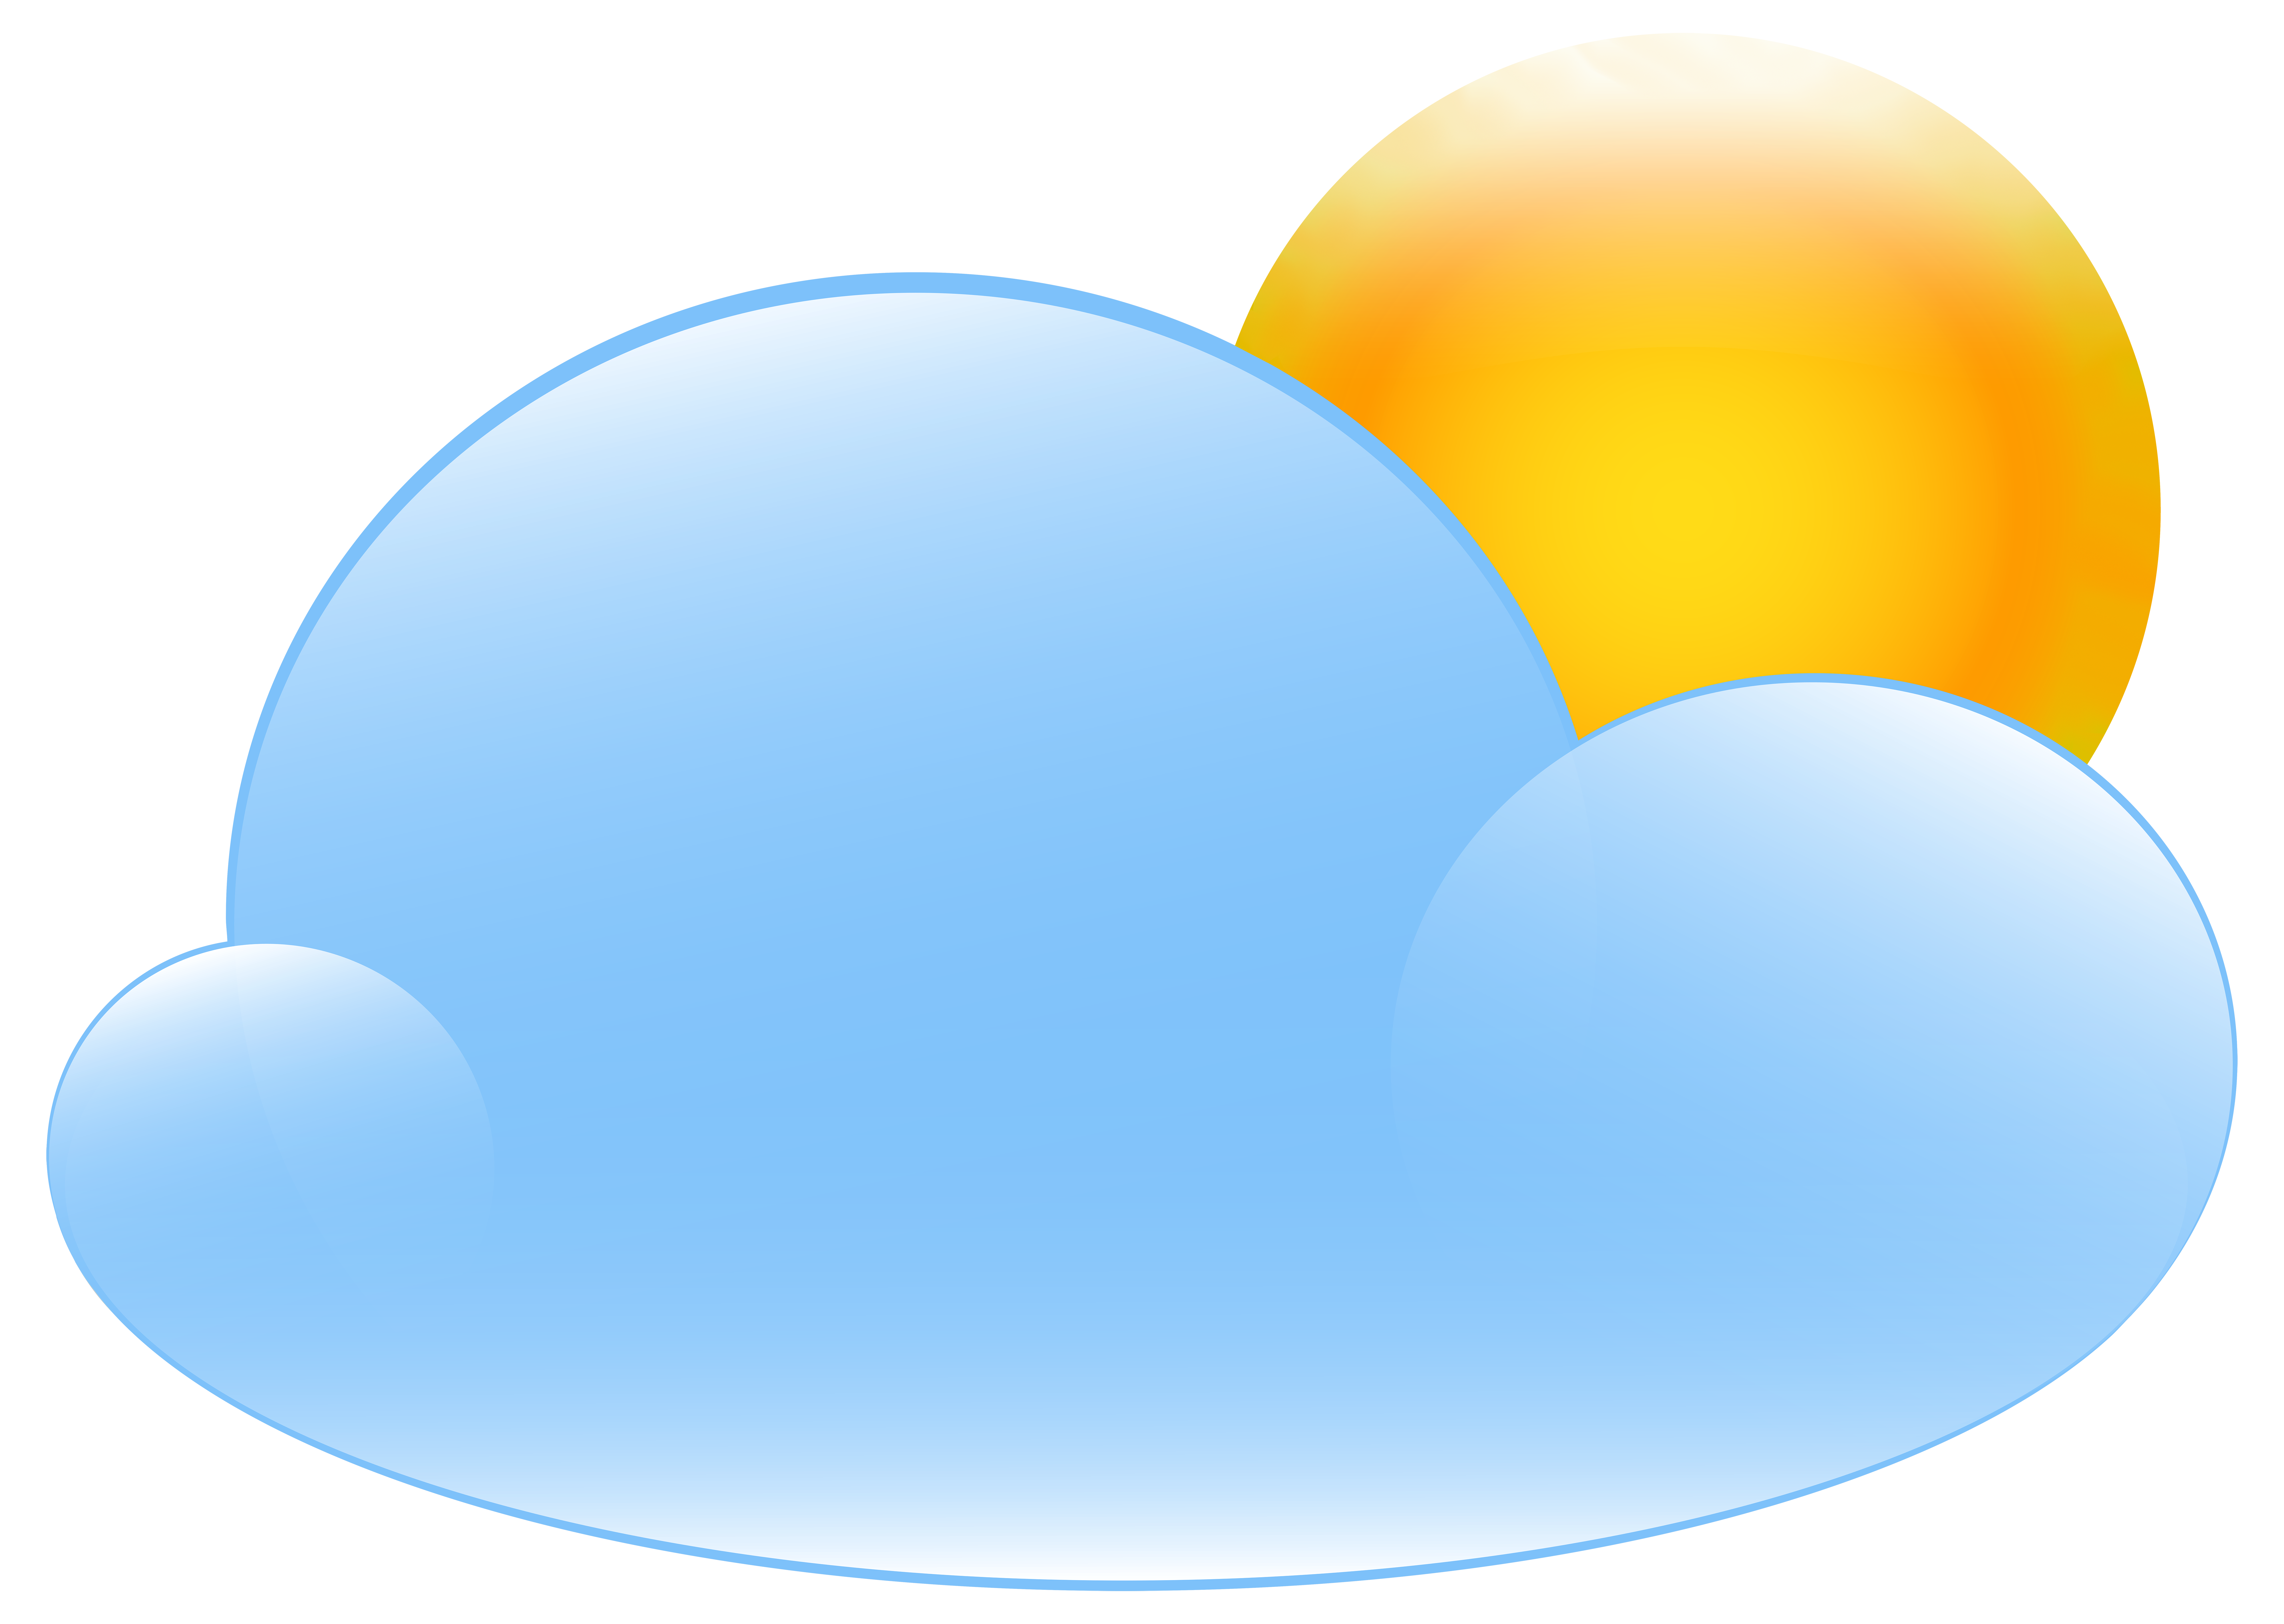 svg free download Partly clipart. Cloudy with sun weather